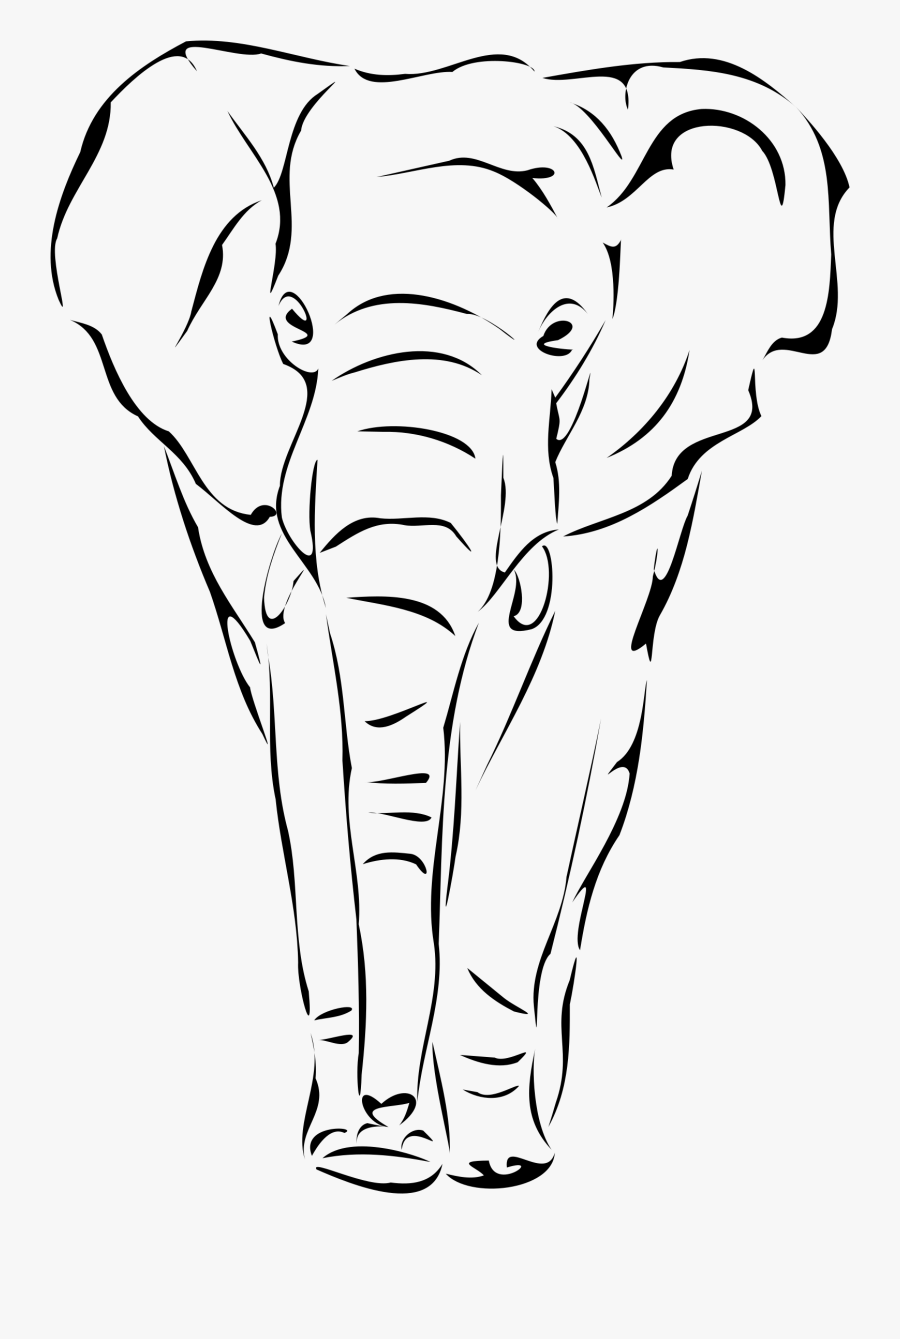 Free Drawing Outline Letters - Elephant Transparent Line Drawing, Transparent Clipart